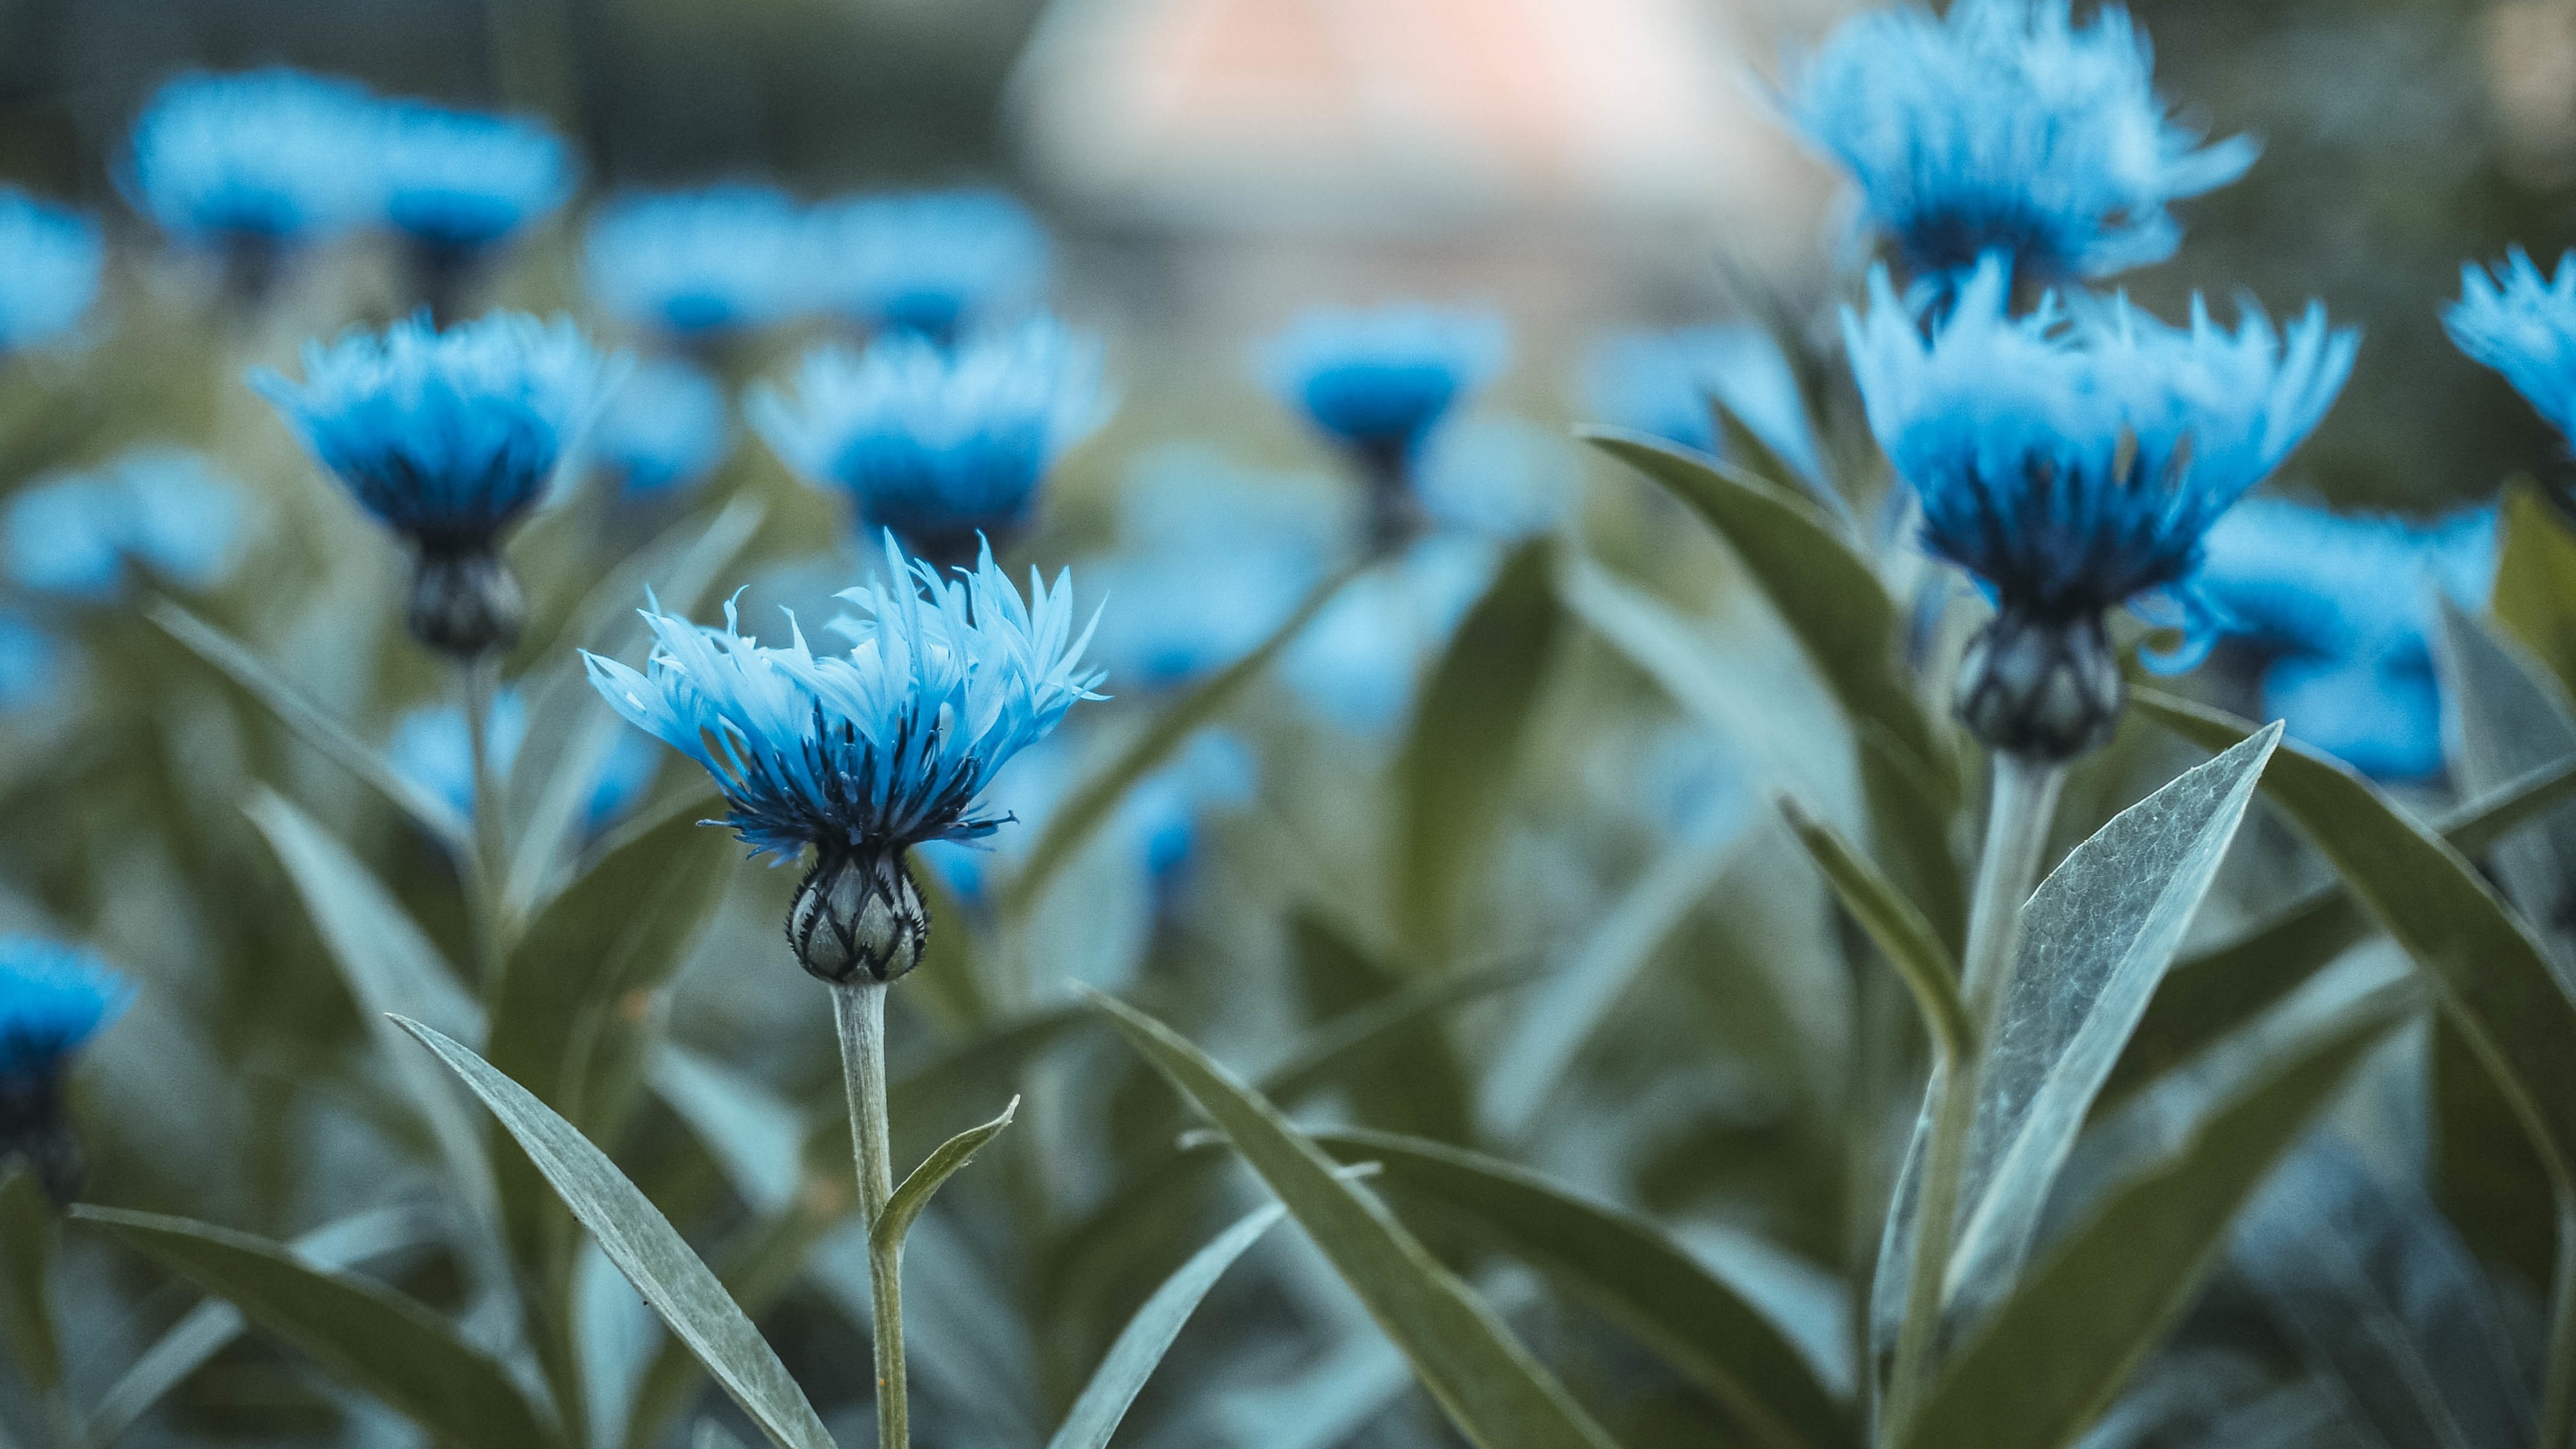 Res: 3840x2160, Flowers / Blue flowers Wallpaper